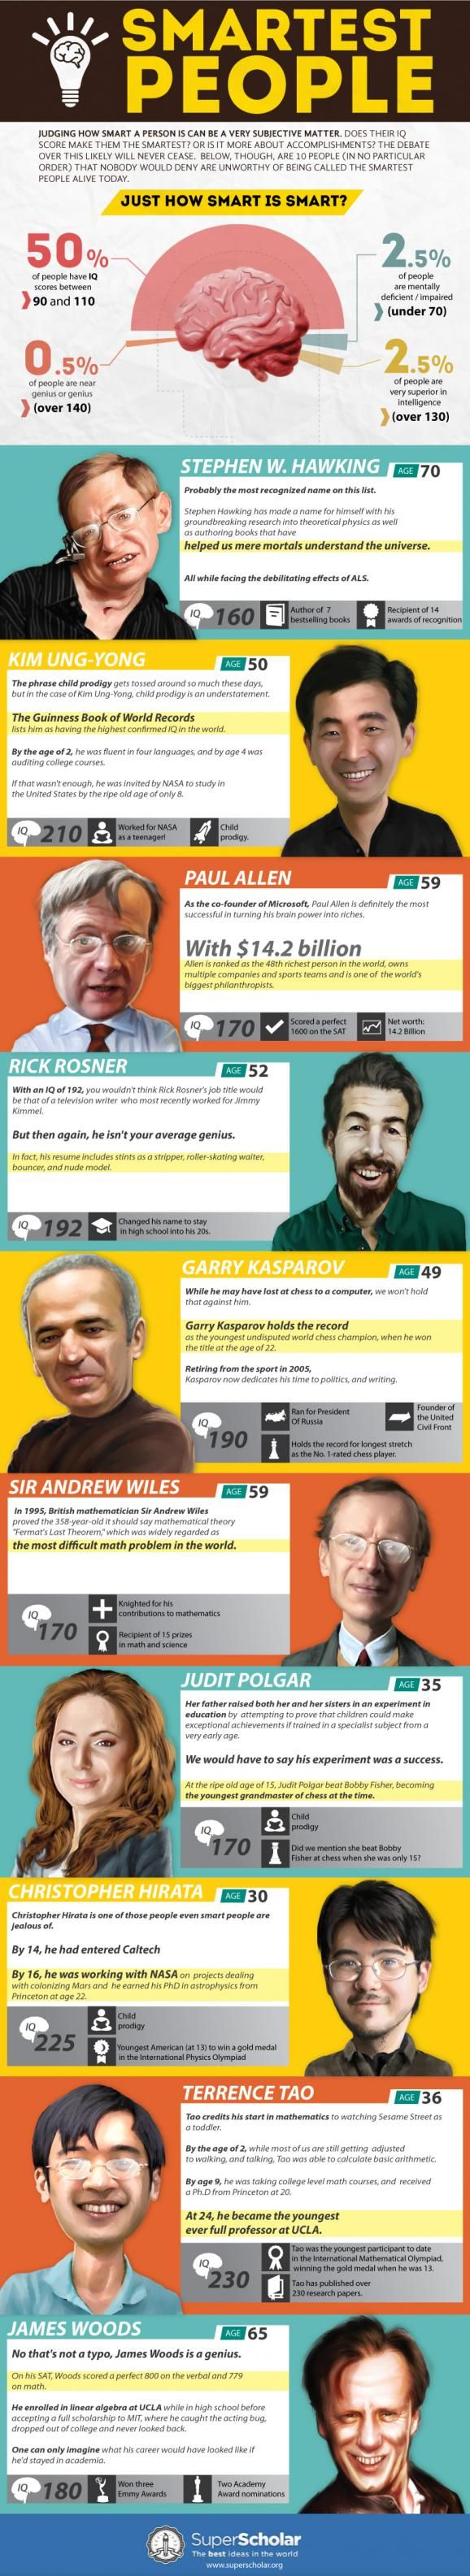 10 people with the highest IQ in the world (Infographic)Smartest People, Smart People, Persona Más, Alive Today, 10 Smartest, Más Inteligence, People Alive, Infographic, Highest Iq